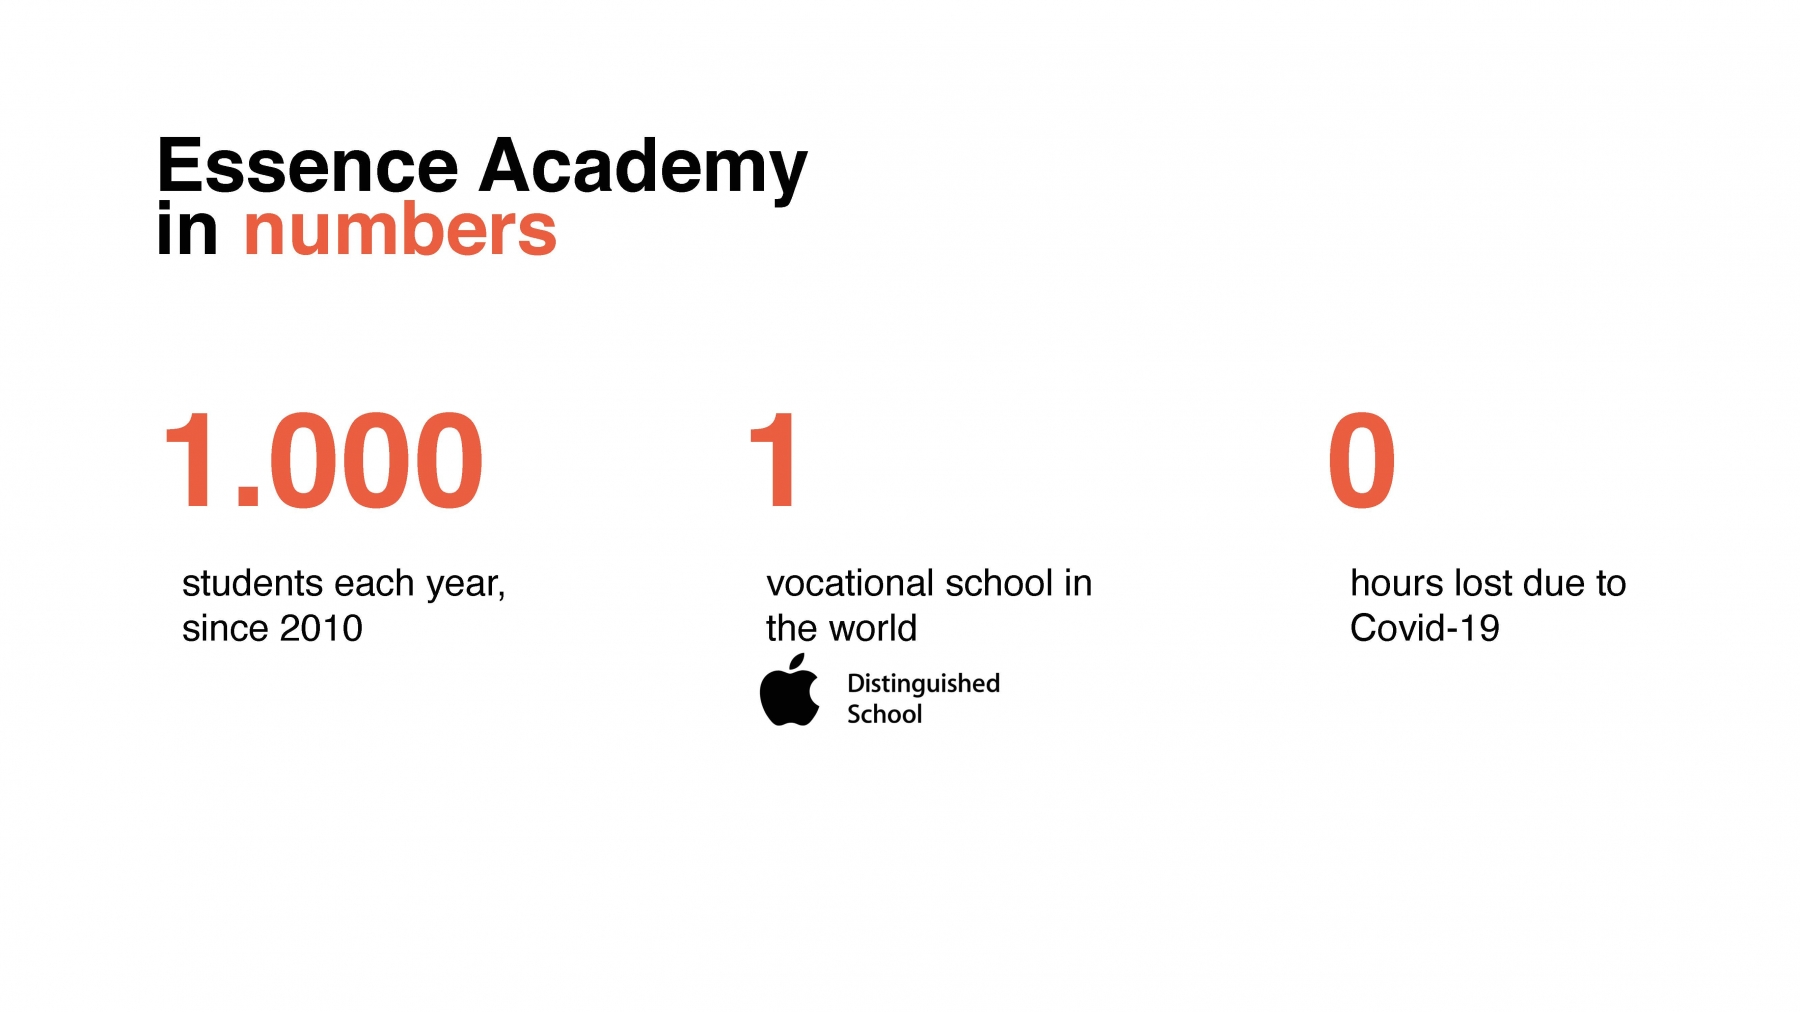 Essence Academy (pres. by Pierpaolo Massone)